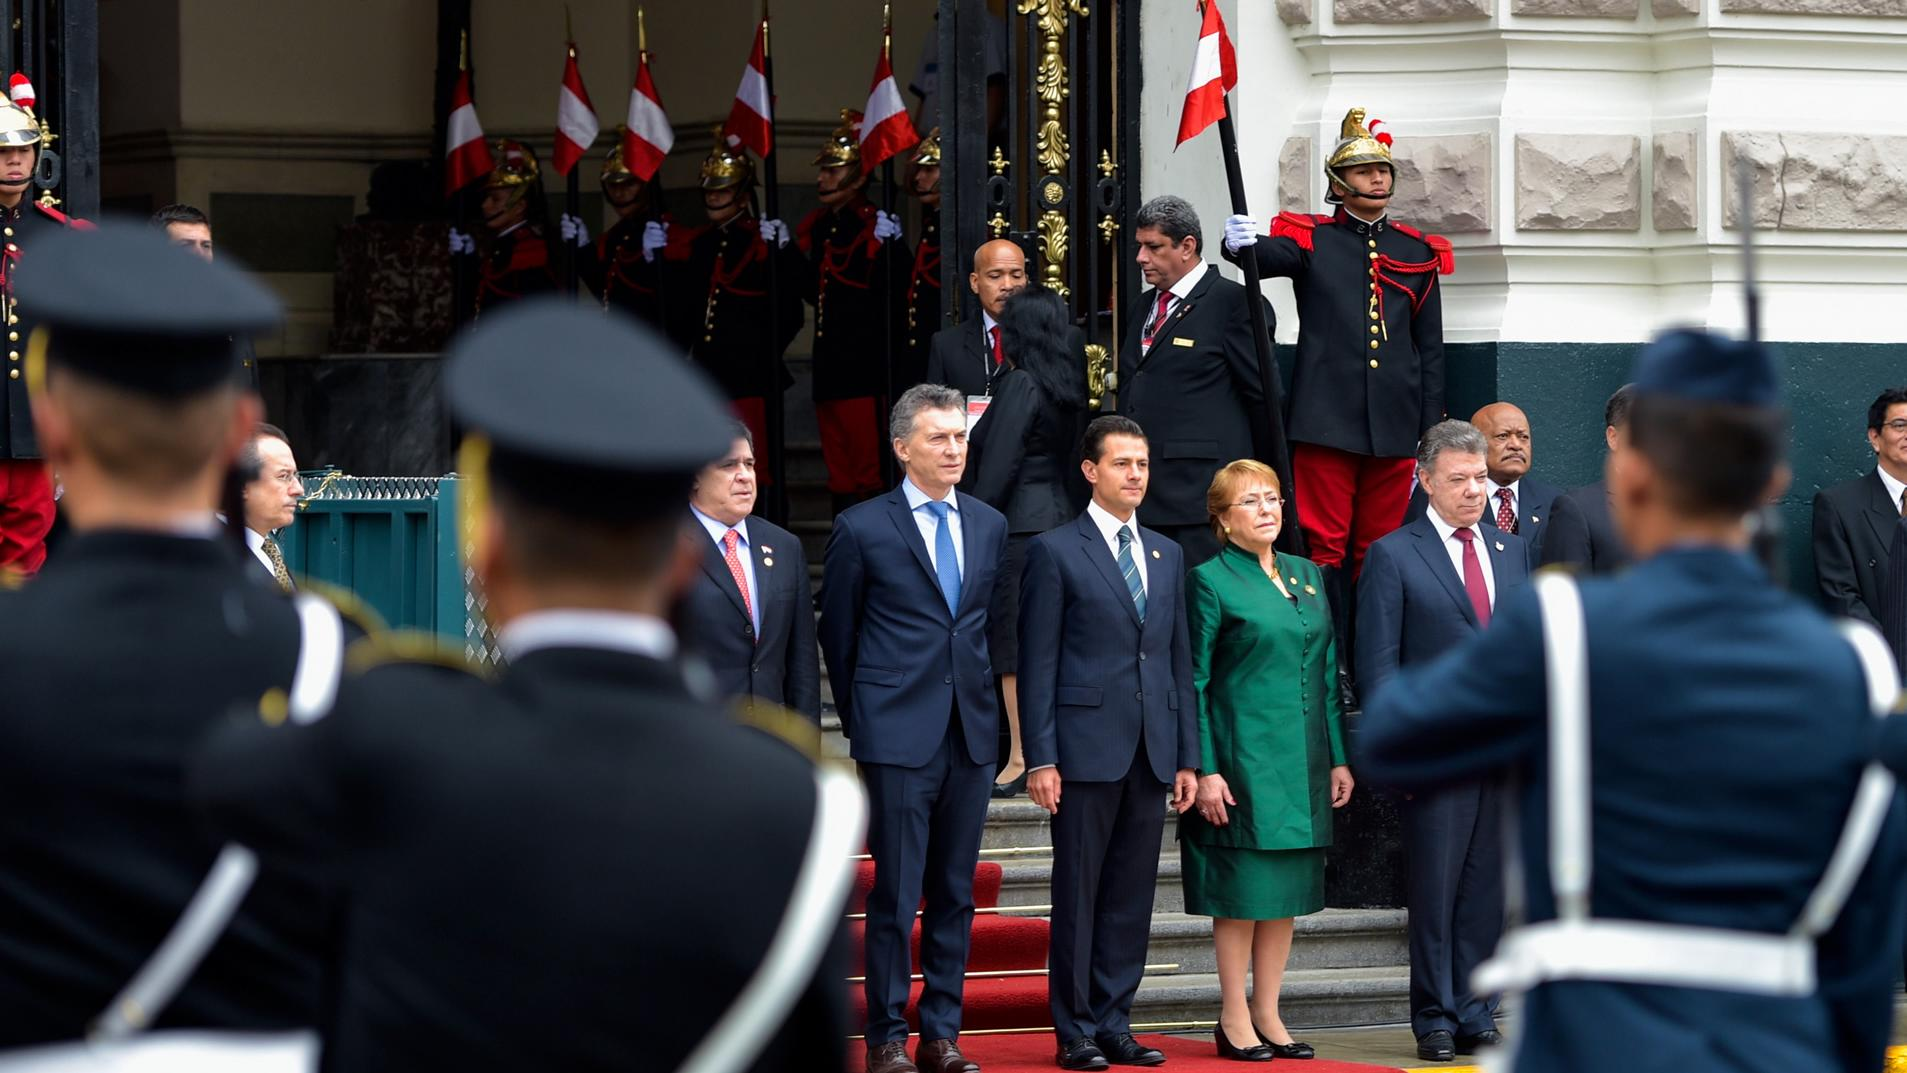 In 2015, Peru was Mexico's fifth largest trading partner in Latin America and the Caribbean after Brazil, Colombia, Chile and Argentina.